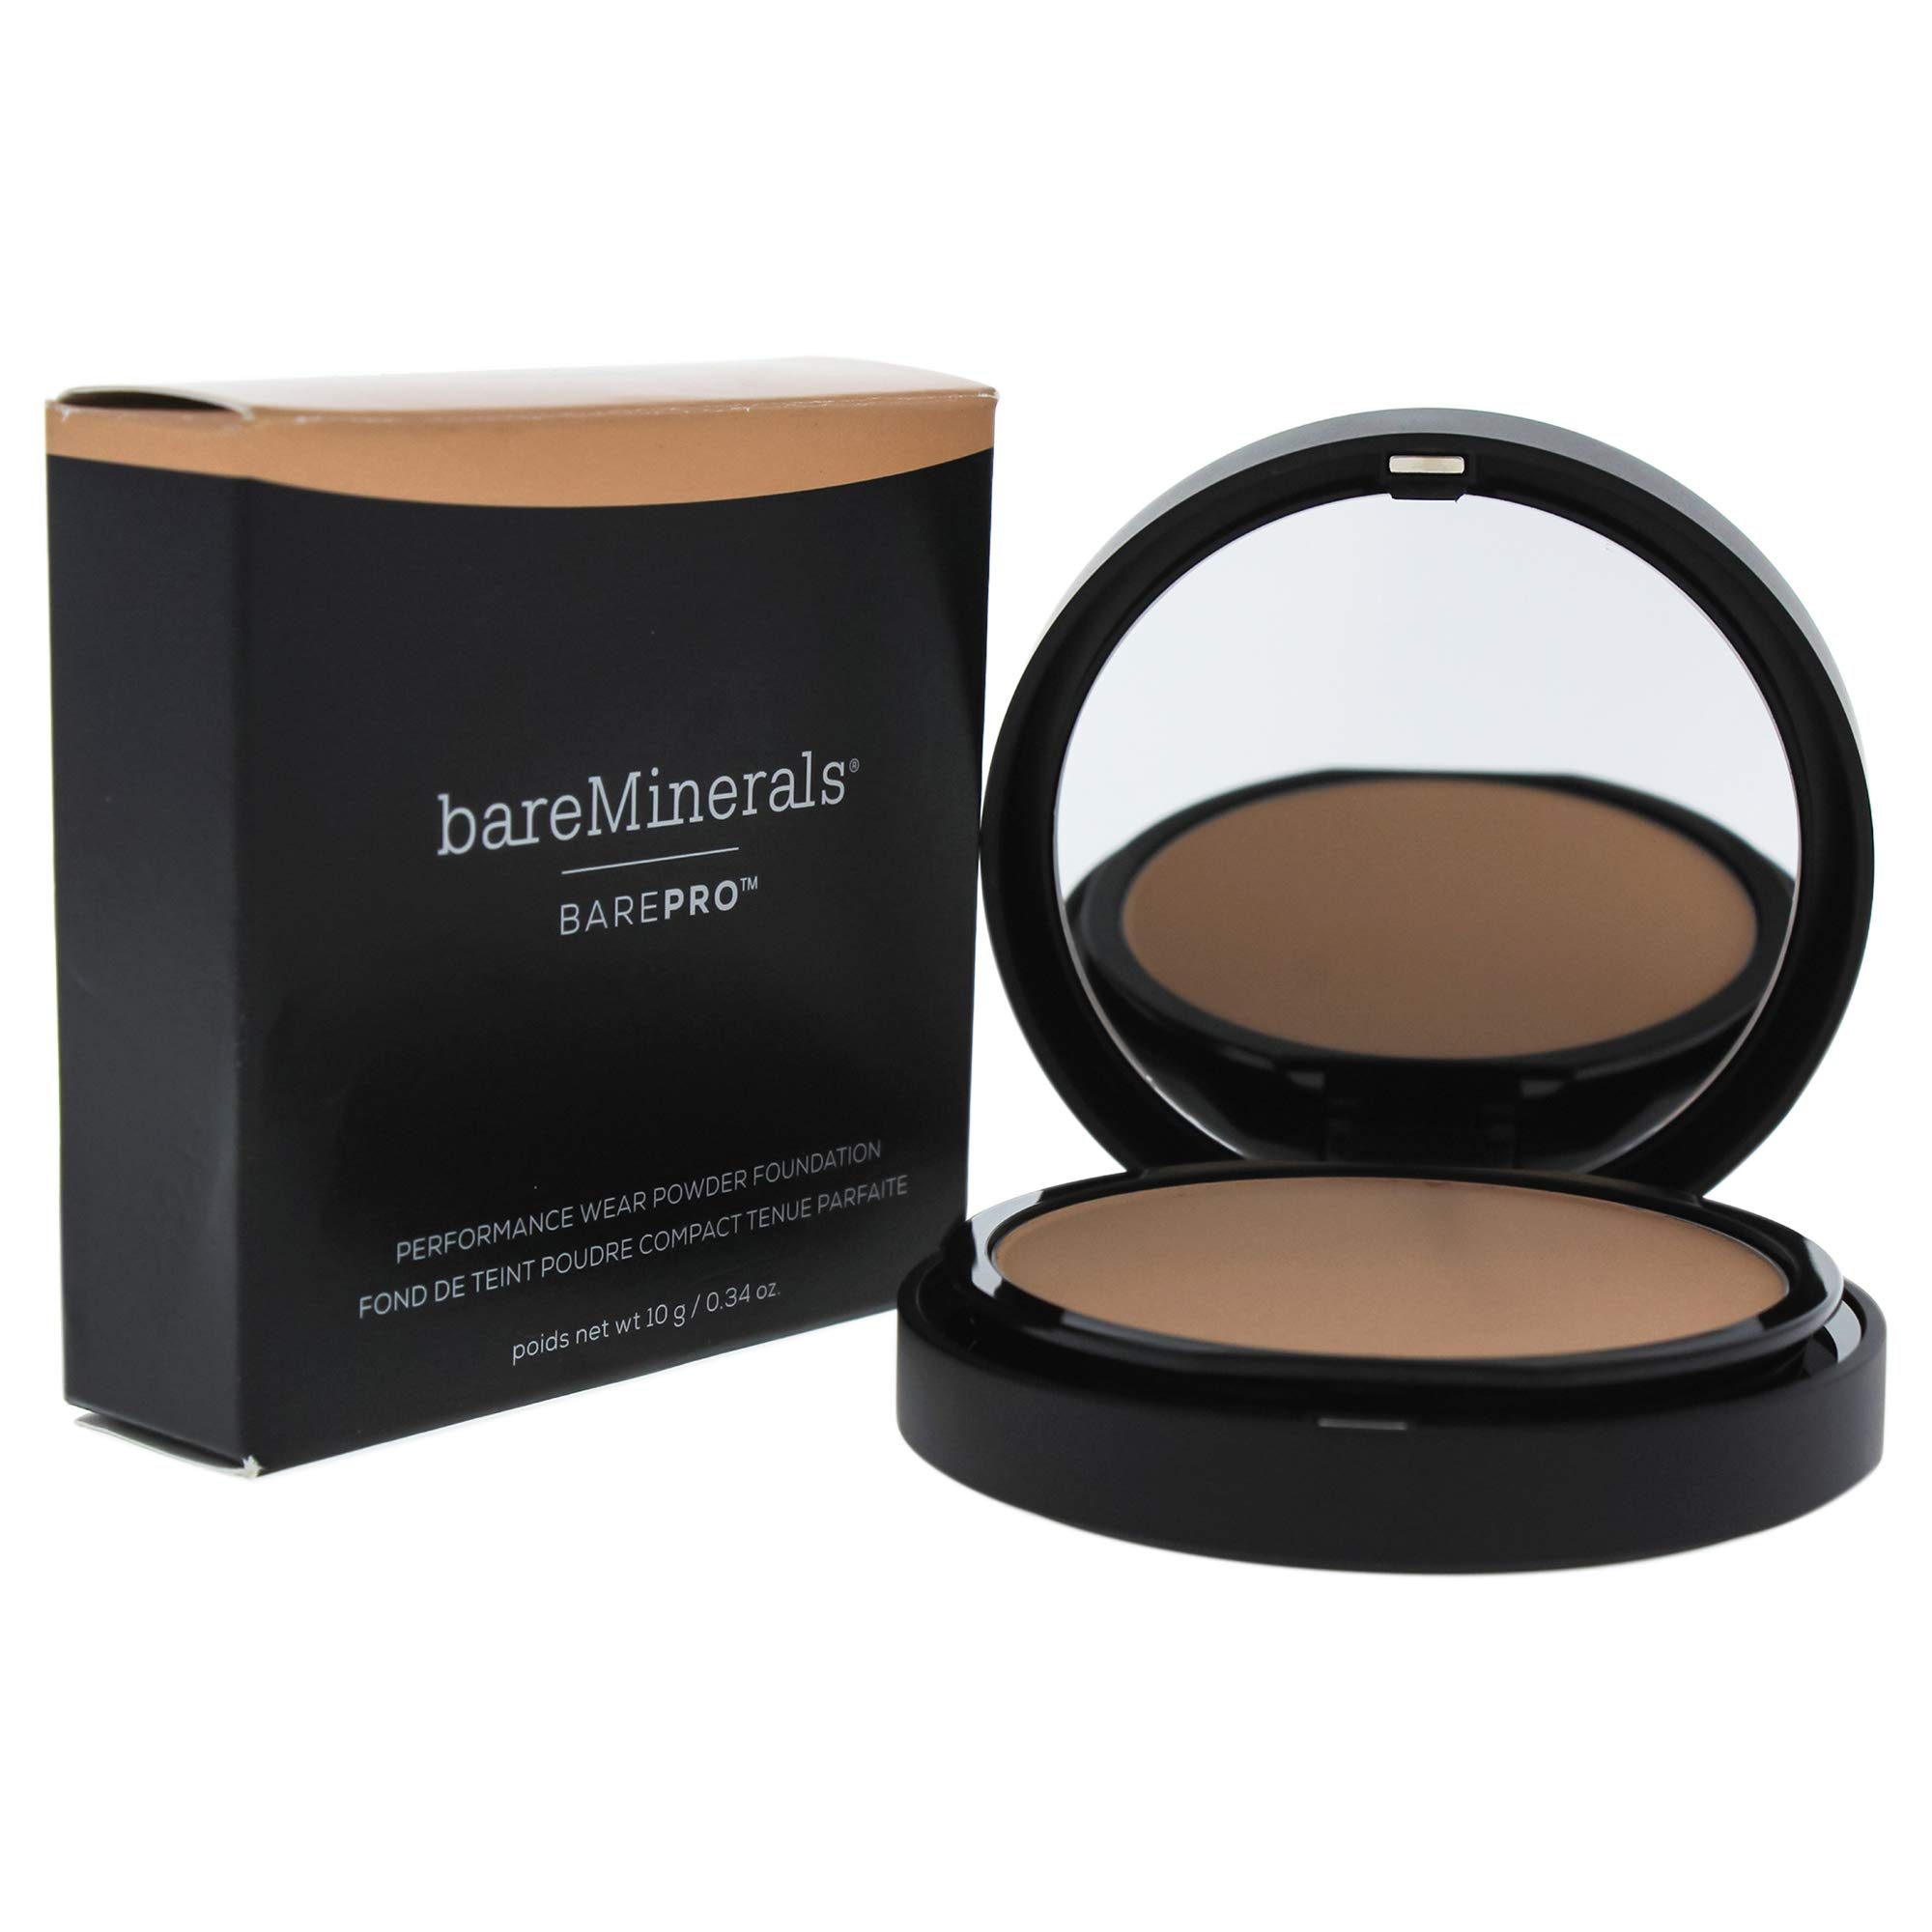 bareMinerals Barepro Performance Wear Powder Foundation, Cool Beige, 0.34 Ounce by bareMinerals